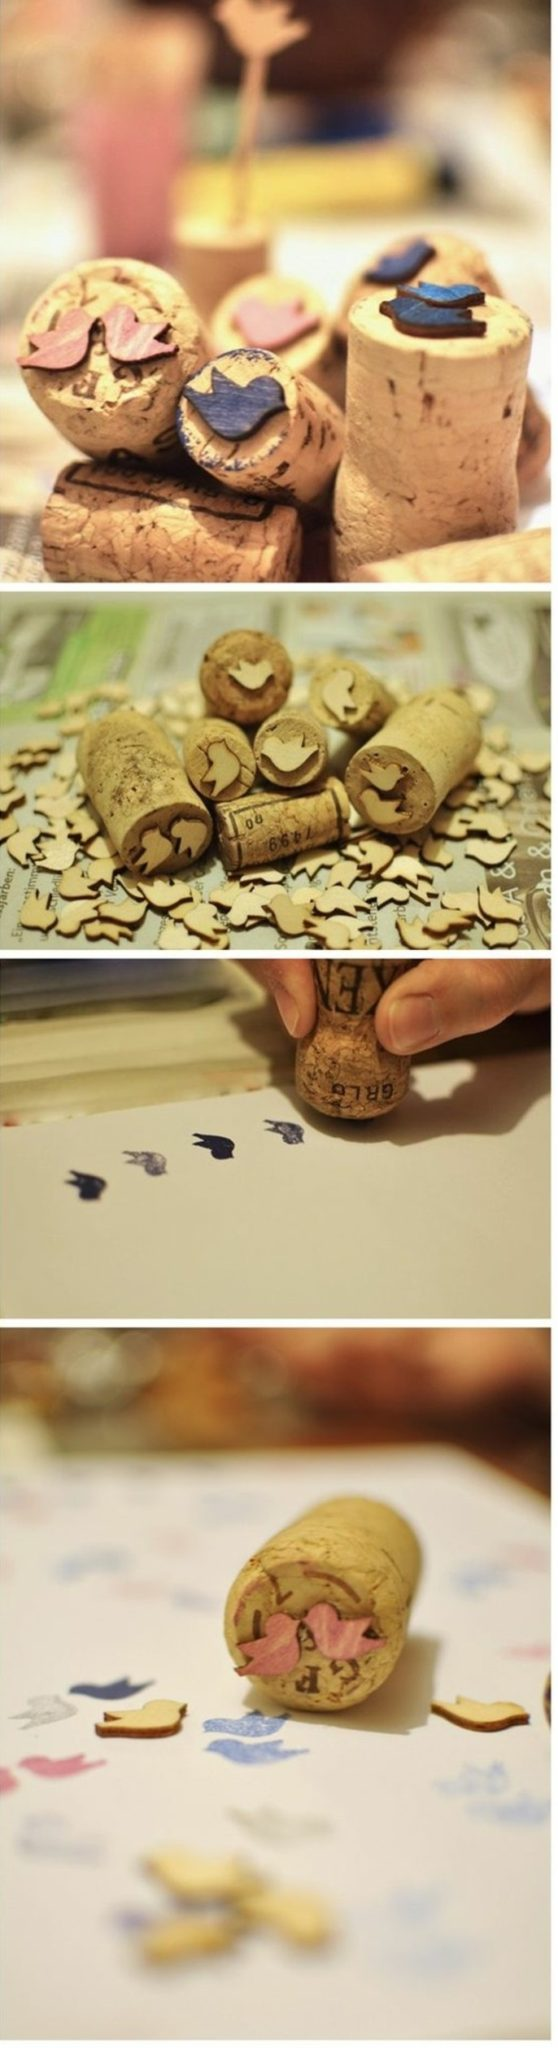 diy-ideas-with-corks41